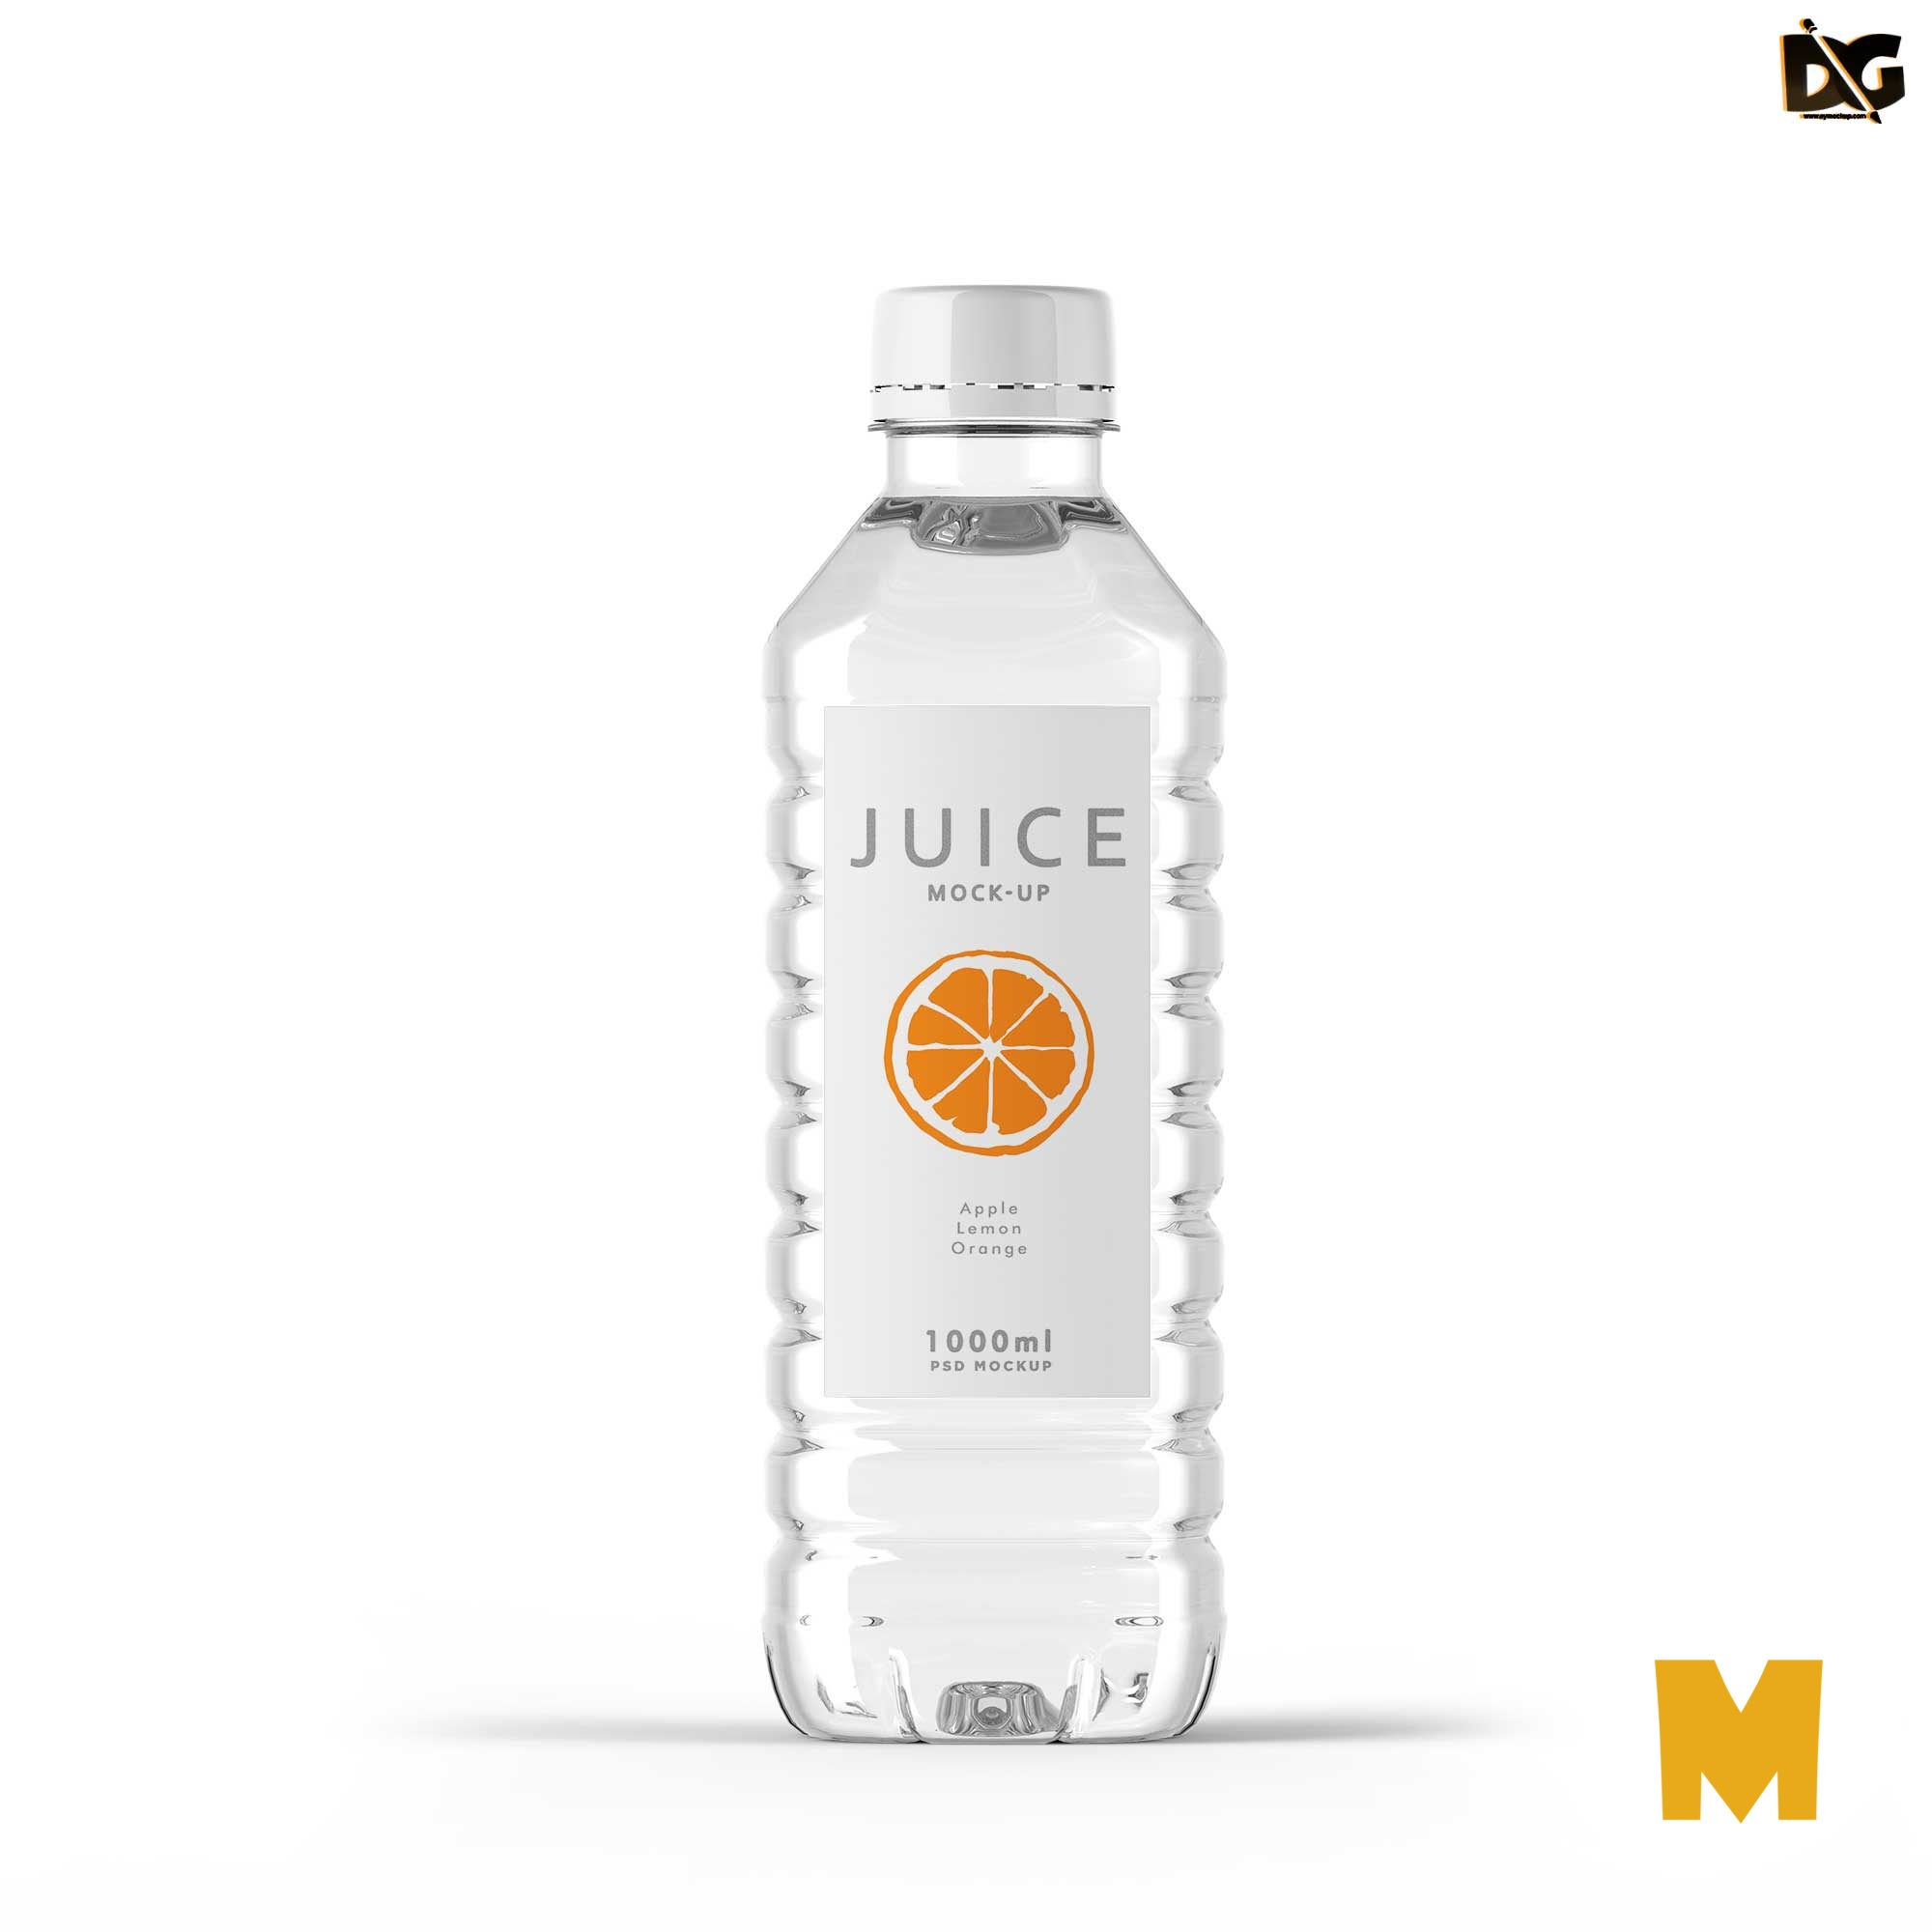 Free Water Bottle Labels Mockup